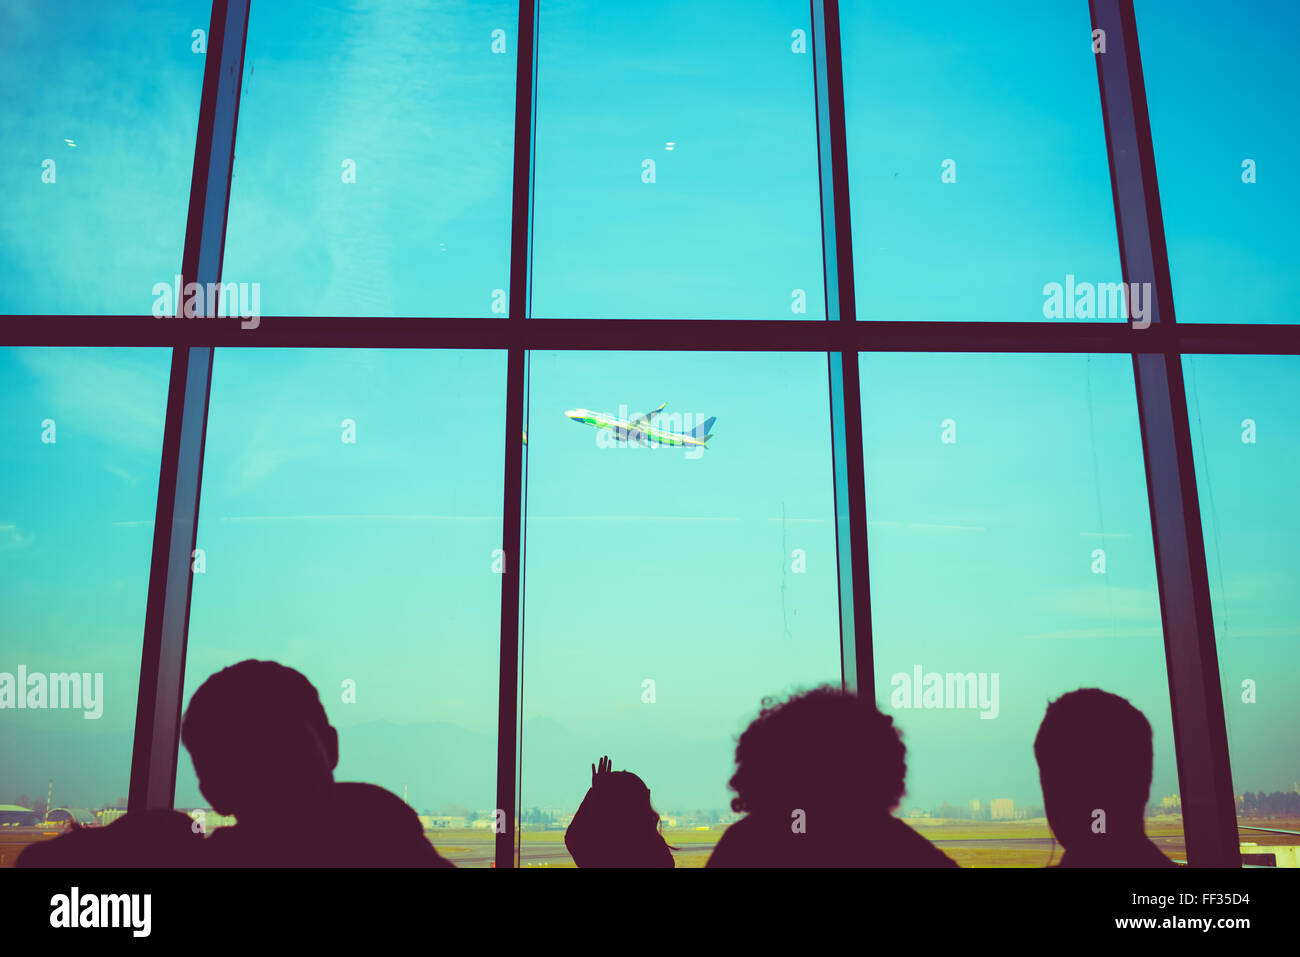 Airplane flying view from the inside of an airport - travel, transport, journey concept - Stock Image